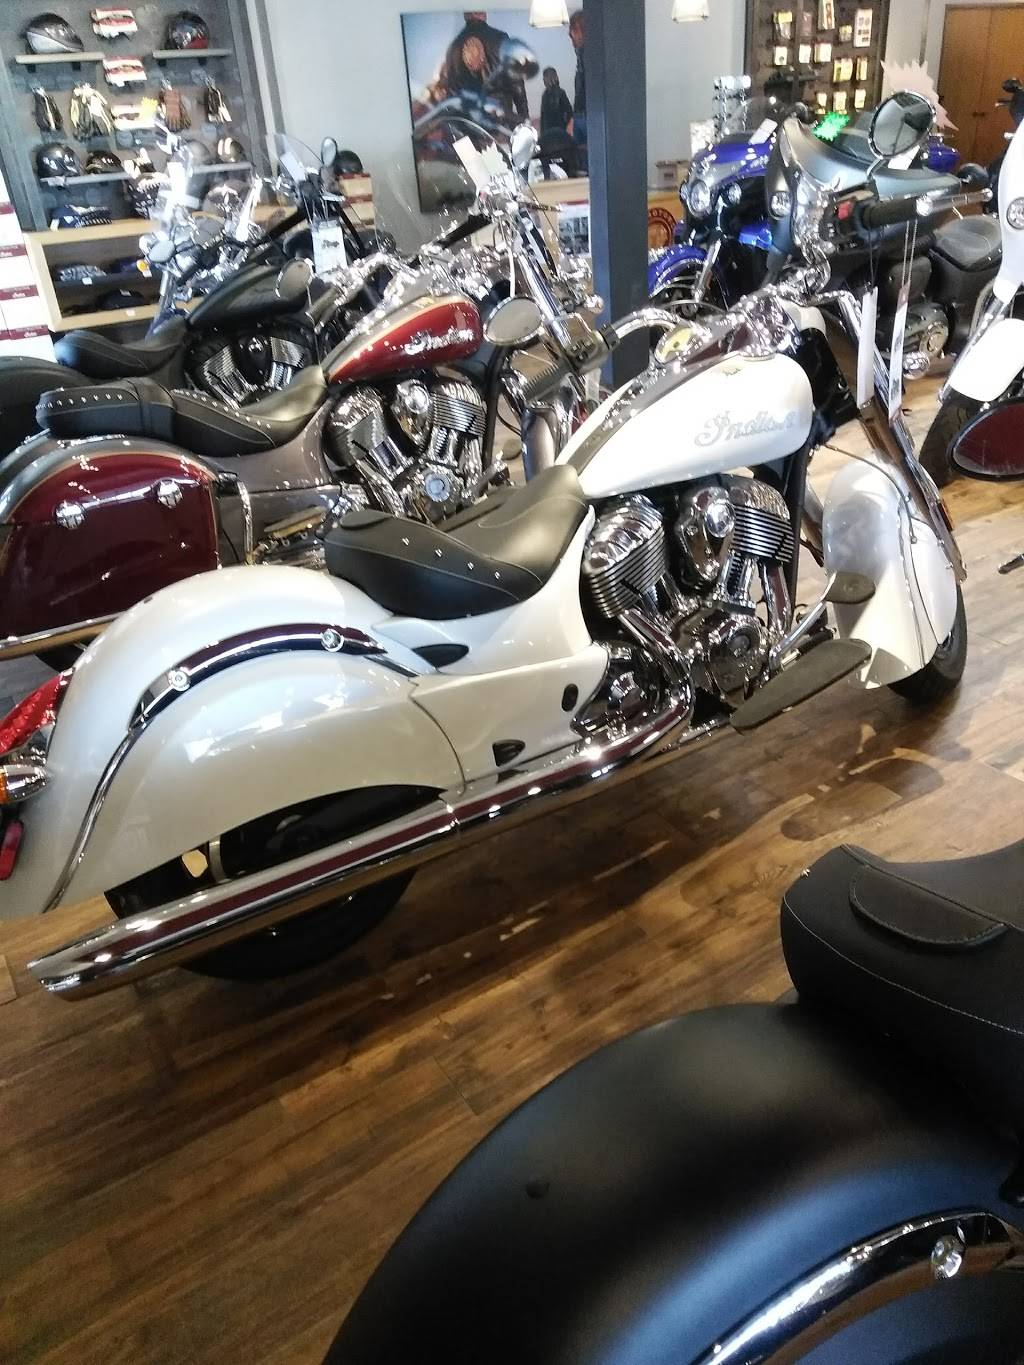 Sooner Indian Motorcycle - store    Photo 4 of 8   Address: 2232 Tecumseh Dr, Norman, OK 73069, USA   Phone: (405) 701-3131